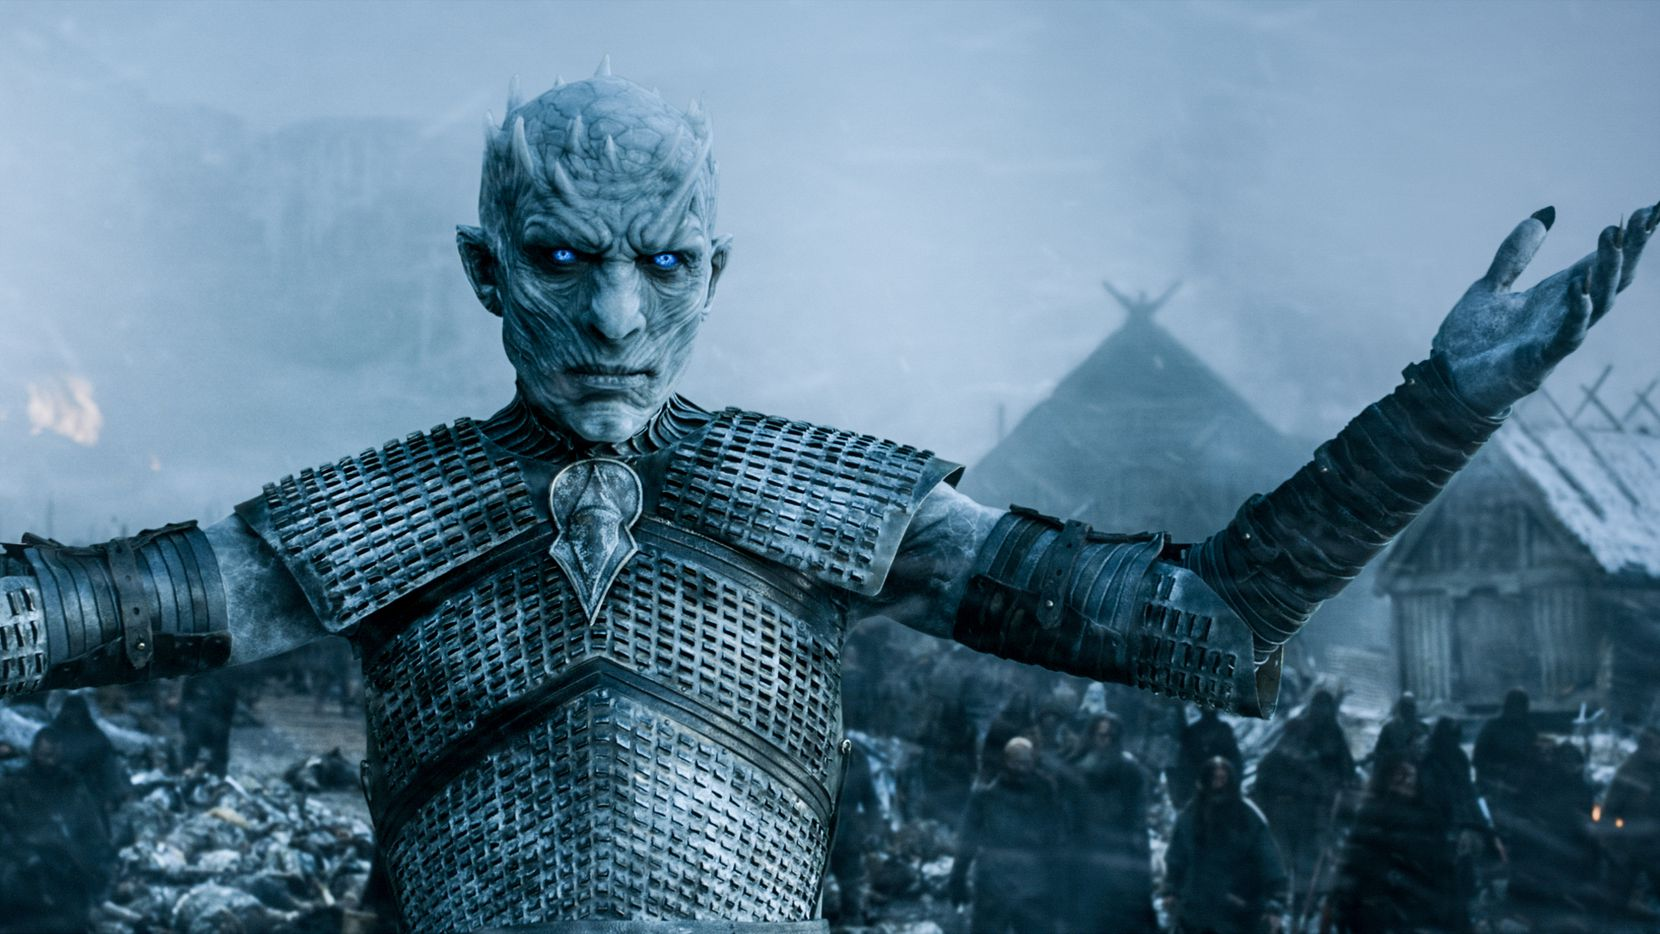 The Night King knows how to strike a pose. (HBO)